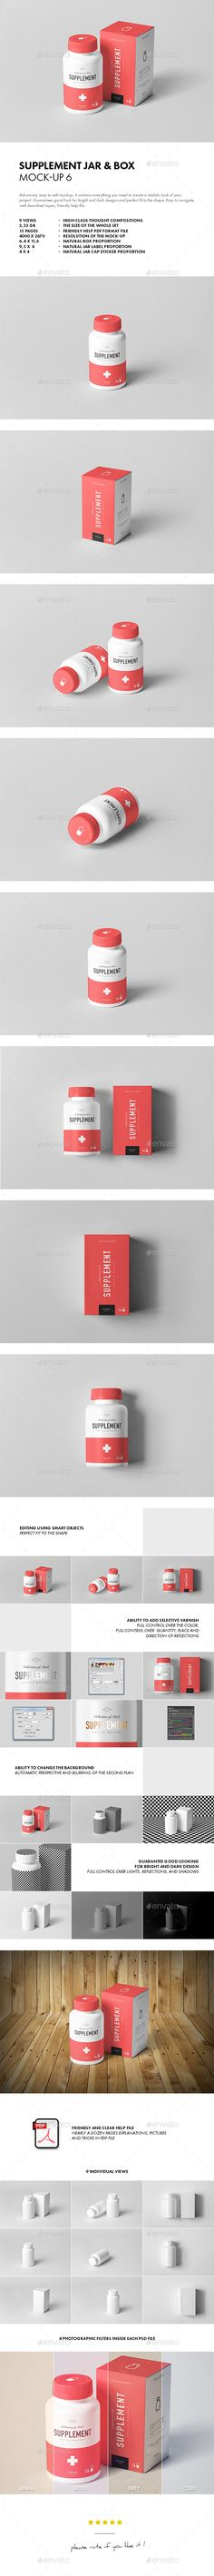 Supplement Jar & Box Mockup 6 — Photoshop PSD #health #vitamin • Available here ➝ https://graphicriver.net/item/supplement-jar-box-mockup-6/20875850?ref=pxcr